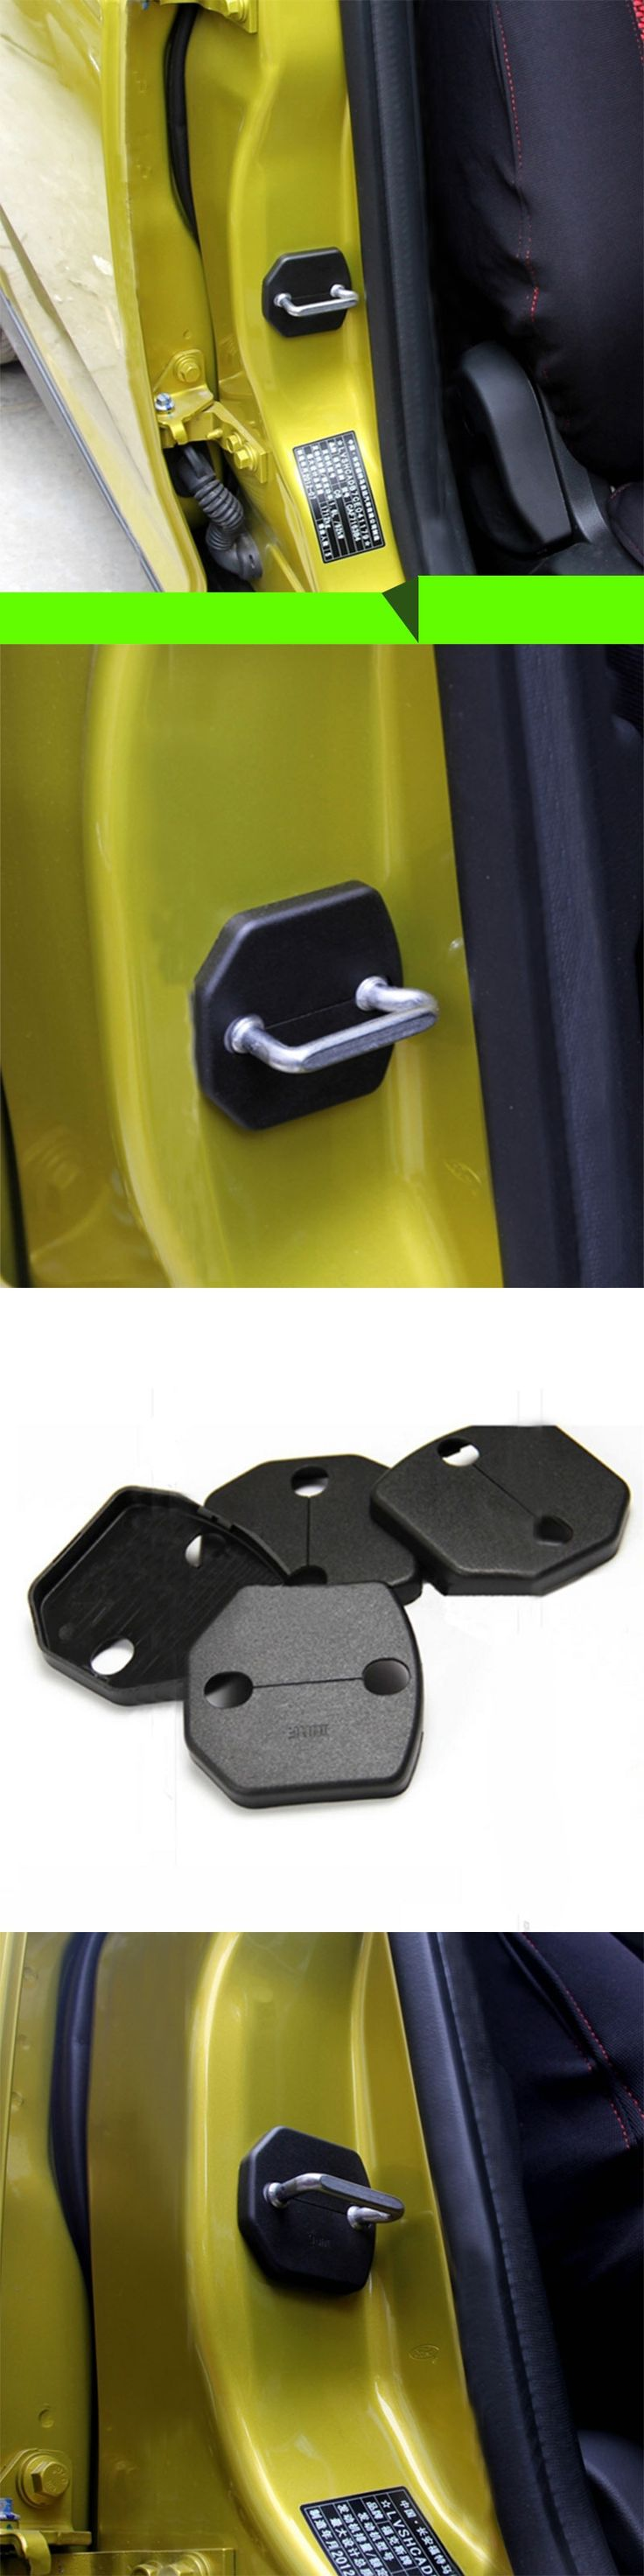 4 Pcs/Set ABS Car Door Lock Protective Cover Door Lock Buckle Case for Ford Focus 3 4 MK3 ST RS Kuga Escape Fiesta 2012 - 2016